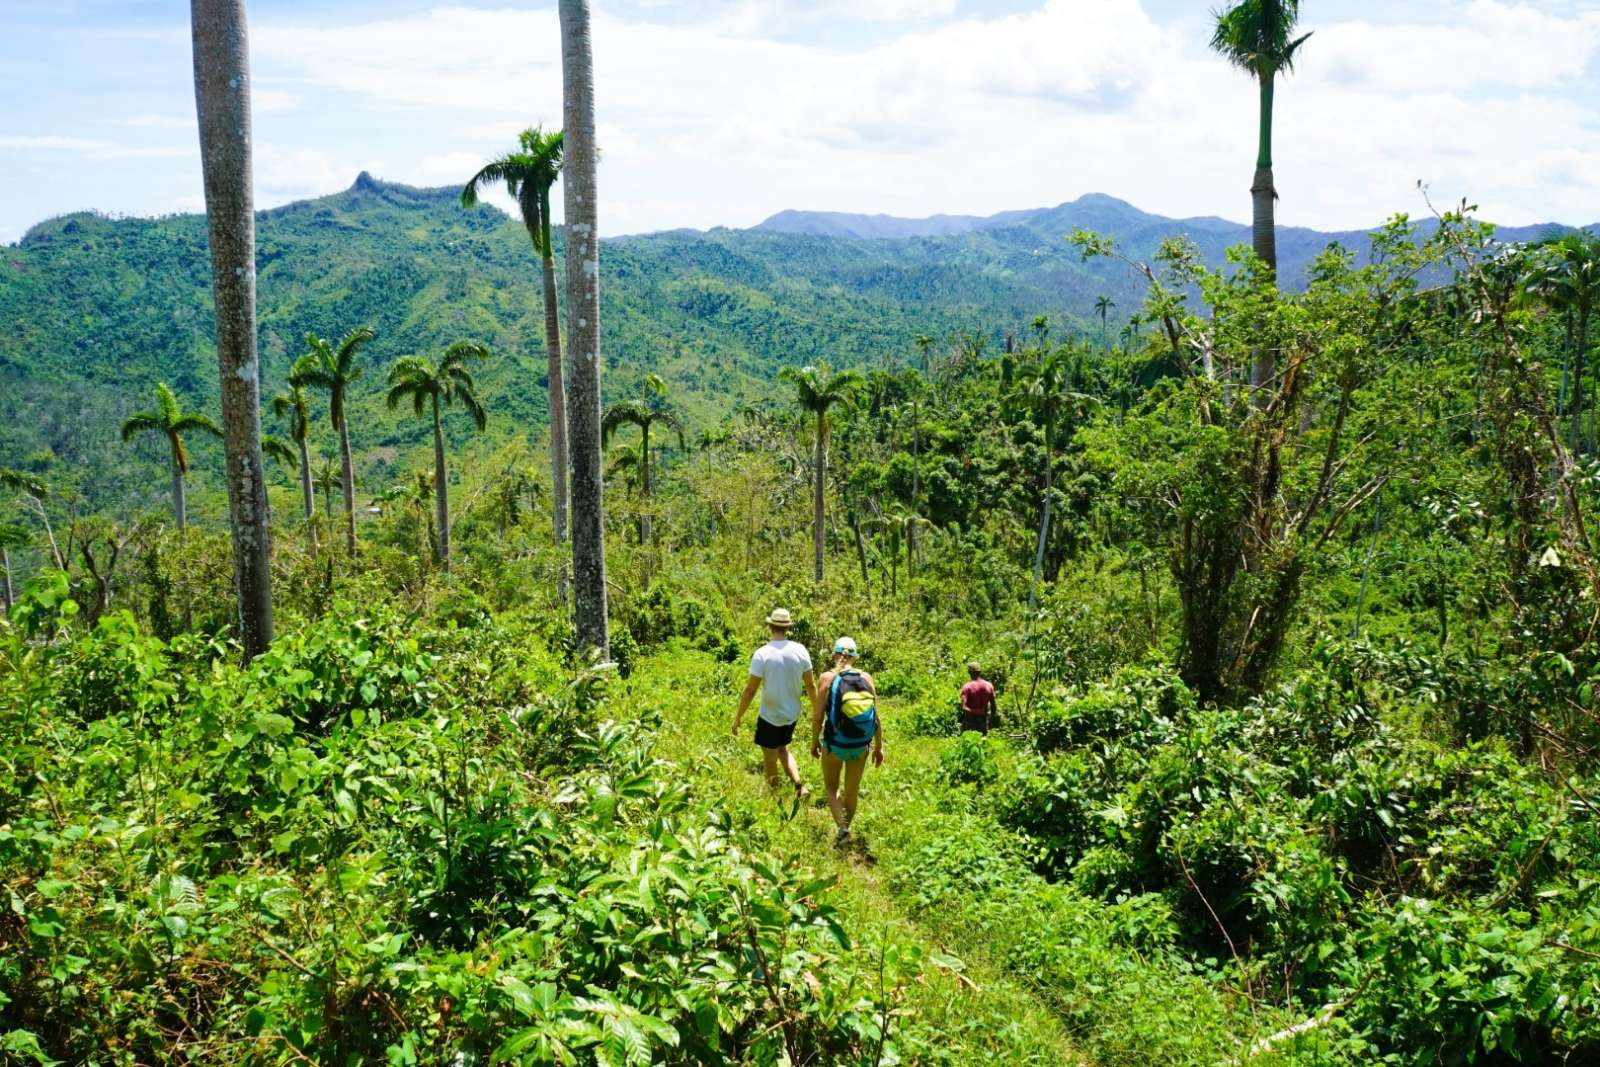 Couple hiking in the Baracoa countryside